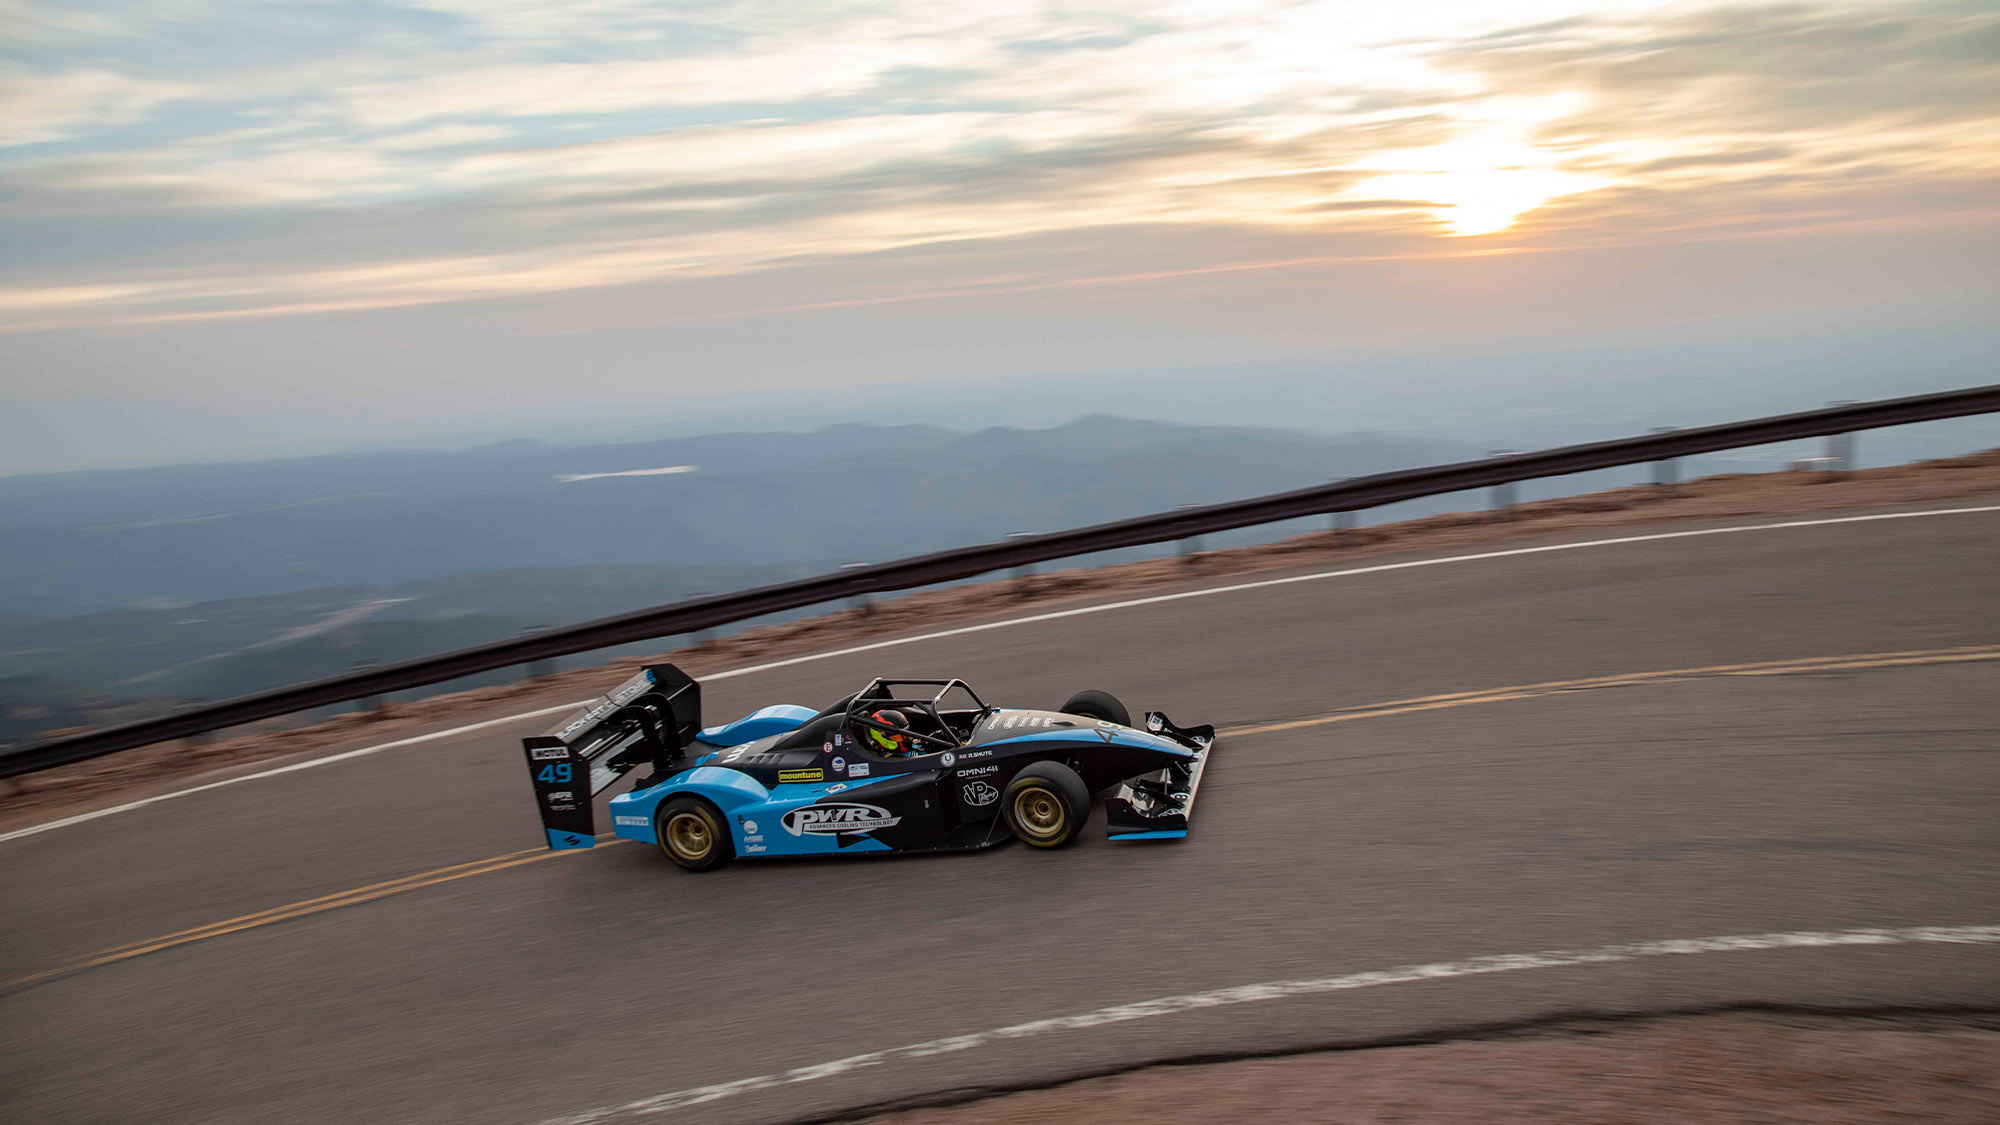 Robin Shute on Pike's Peak at sunset in 2021